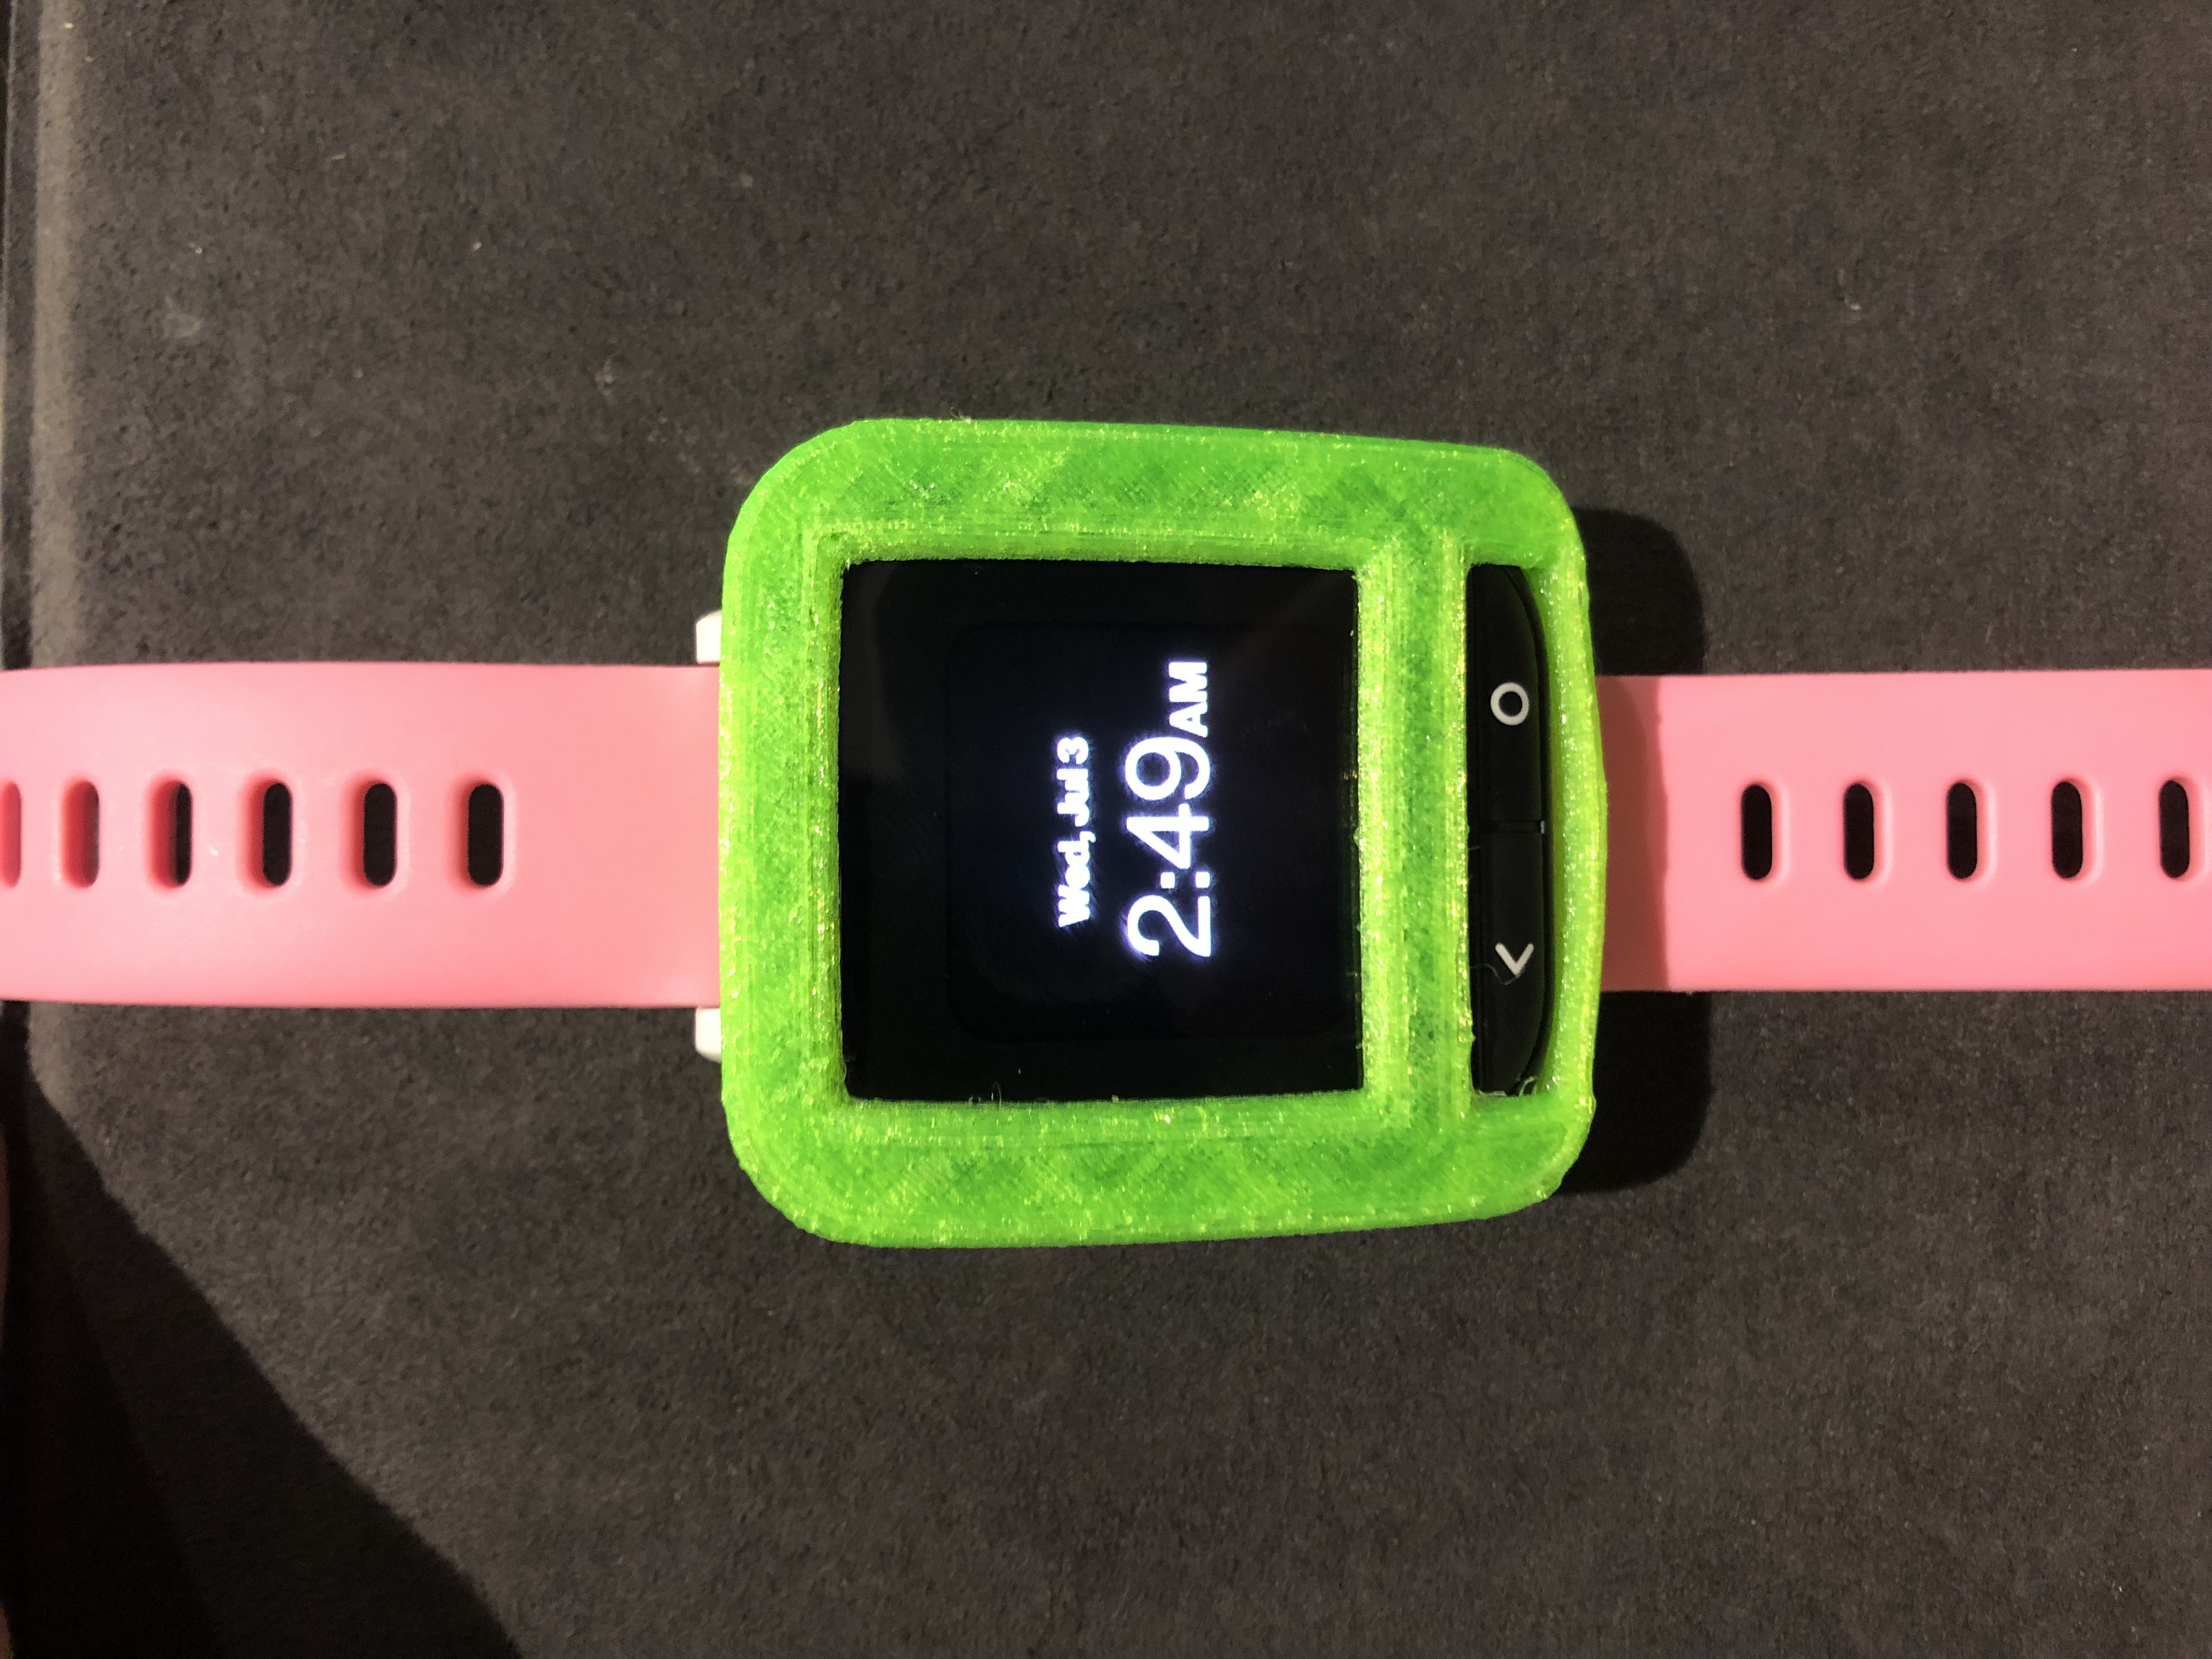 Gizmo Watch Protector by Fddi6k - Thingiverse